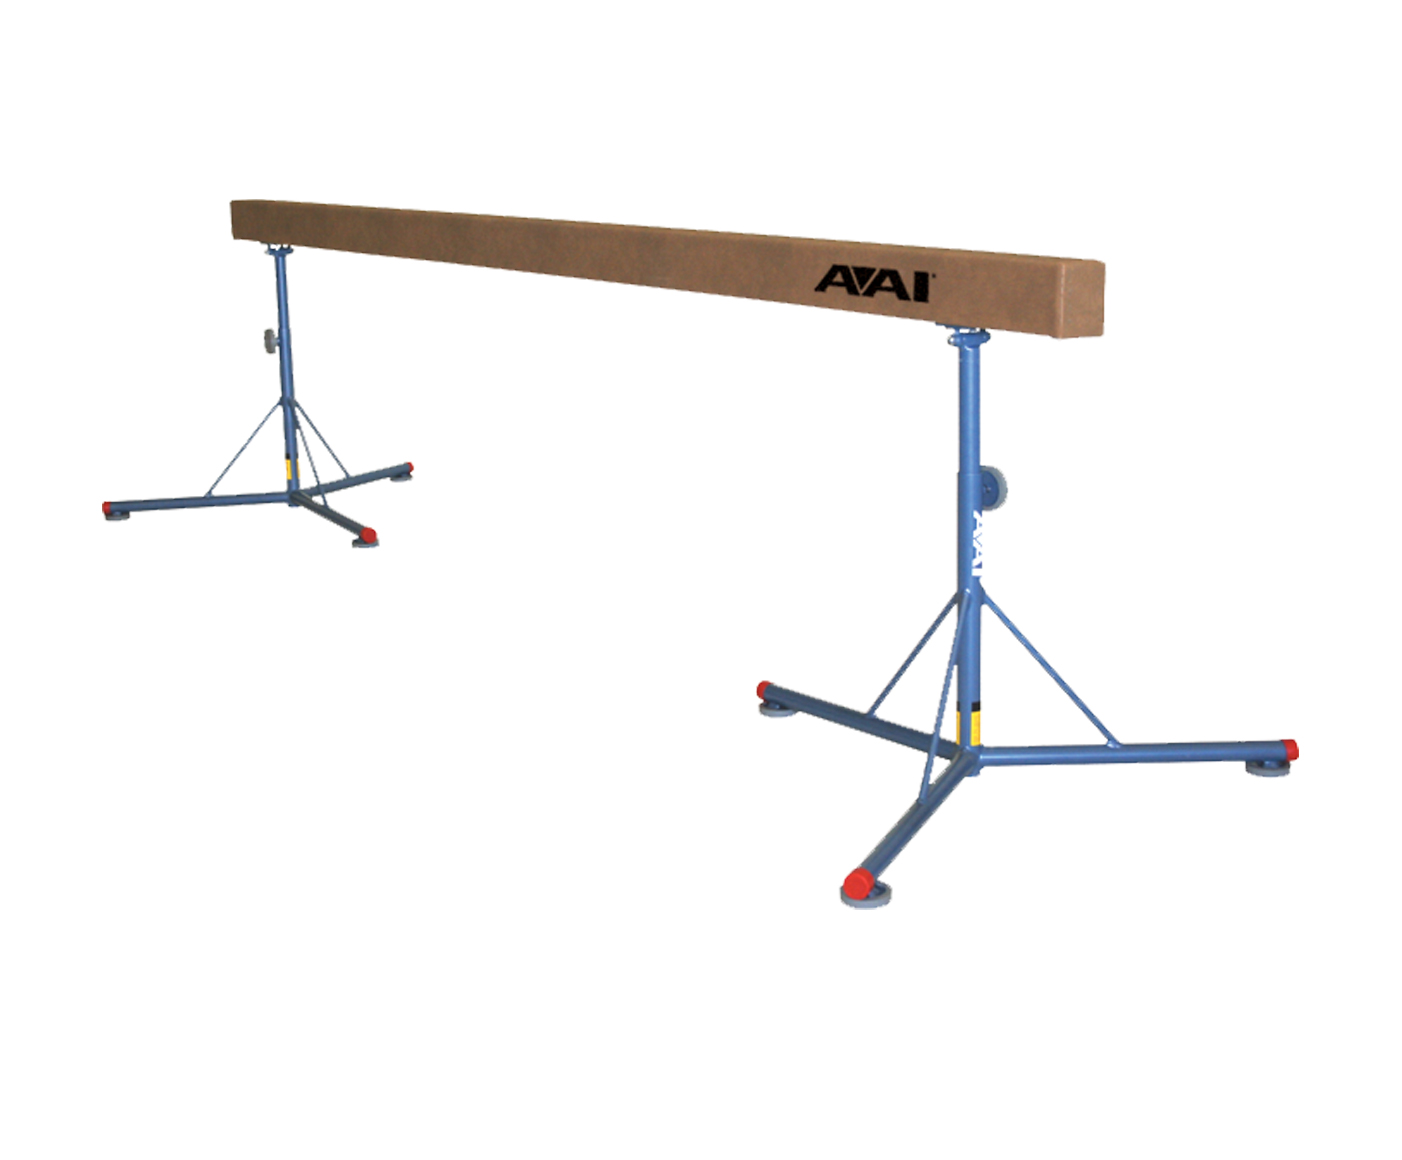 Aai 100 Series Balance Beam Body Only No Legs 407